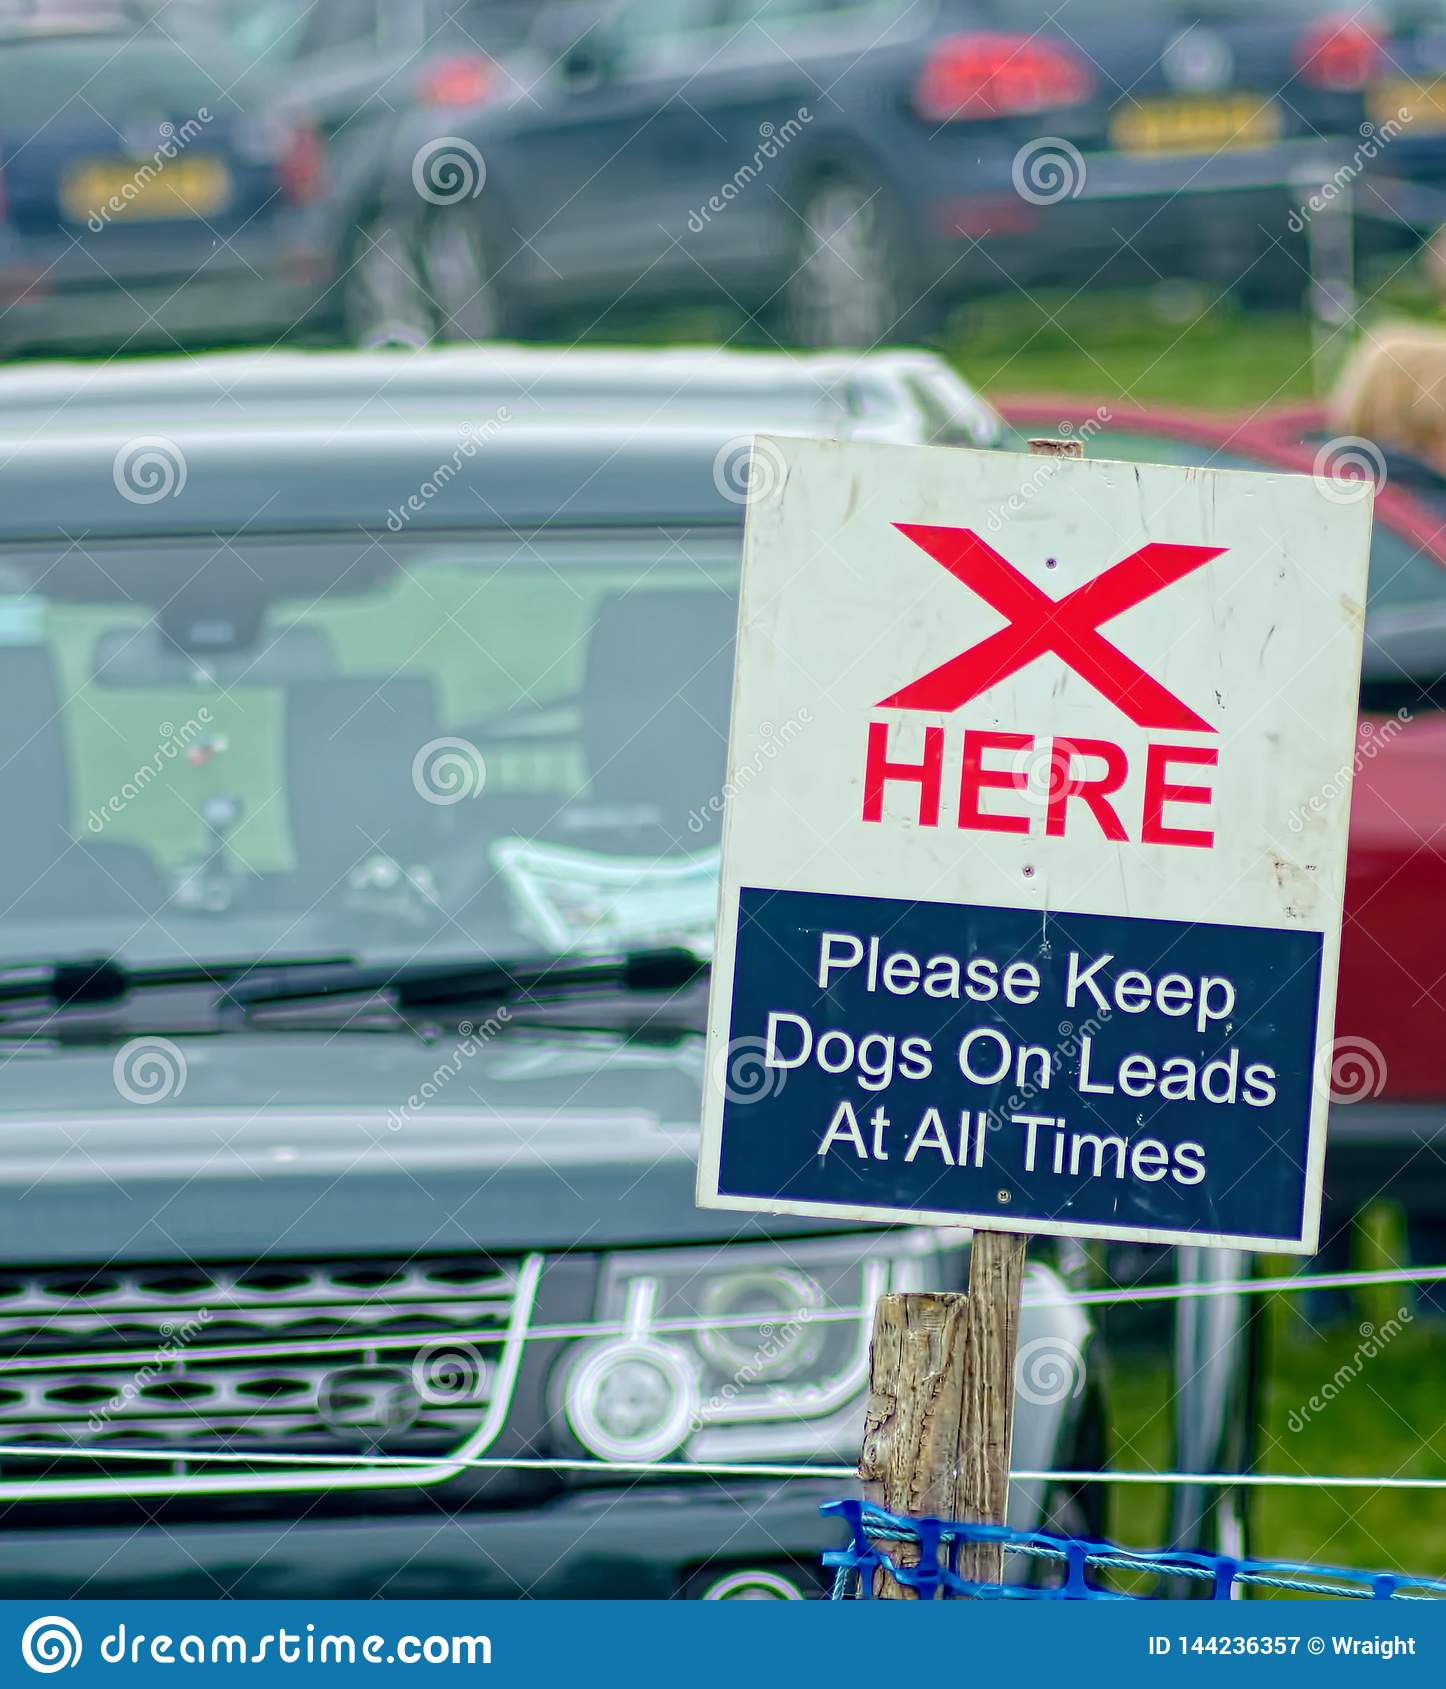 Cross here sign. Keep dogs on leads.